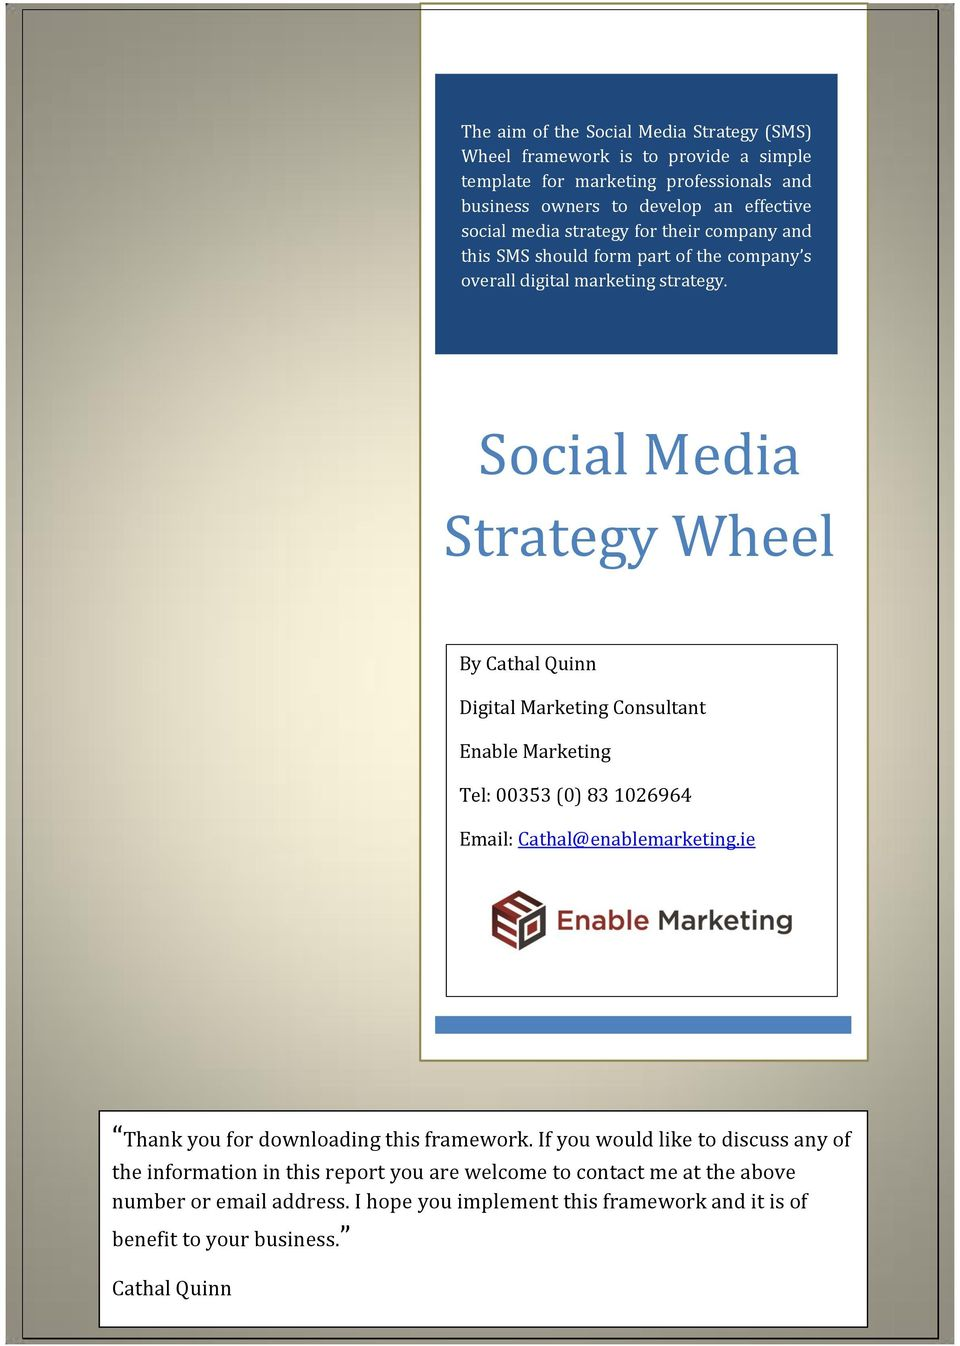 Social Media Strategy Wheel By Cathal Quinn Digital Marketing Consultant Enable Marketing Tel: 00353 (0) 83 1026964 Email: Cathal@enablemarketing.